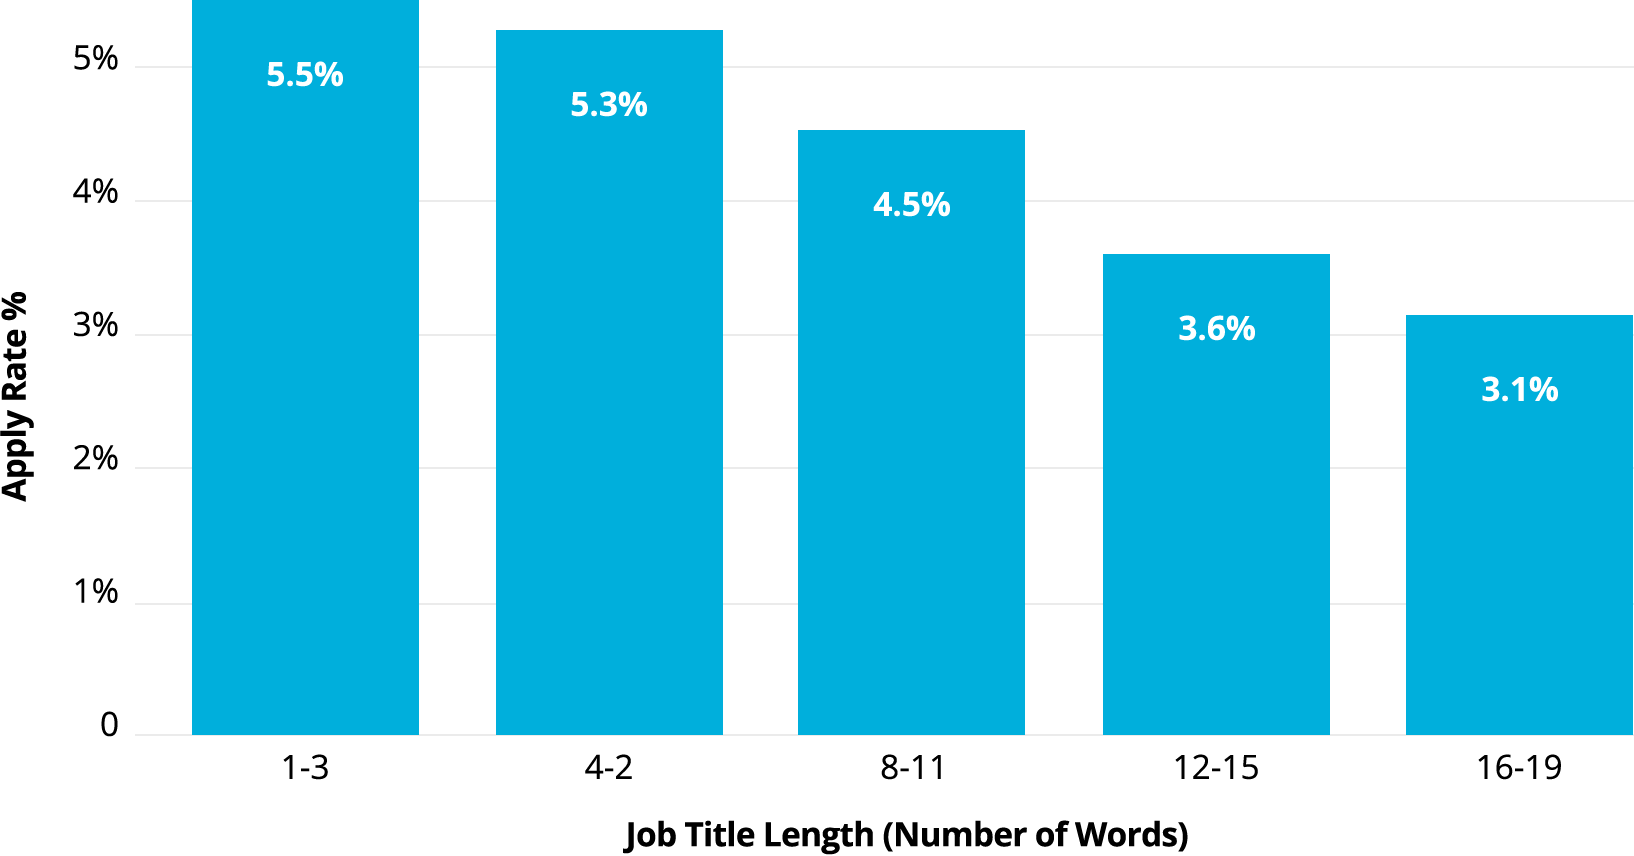 Job Ad Apply Rate by Length of Title